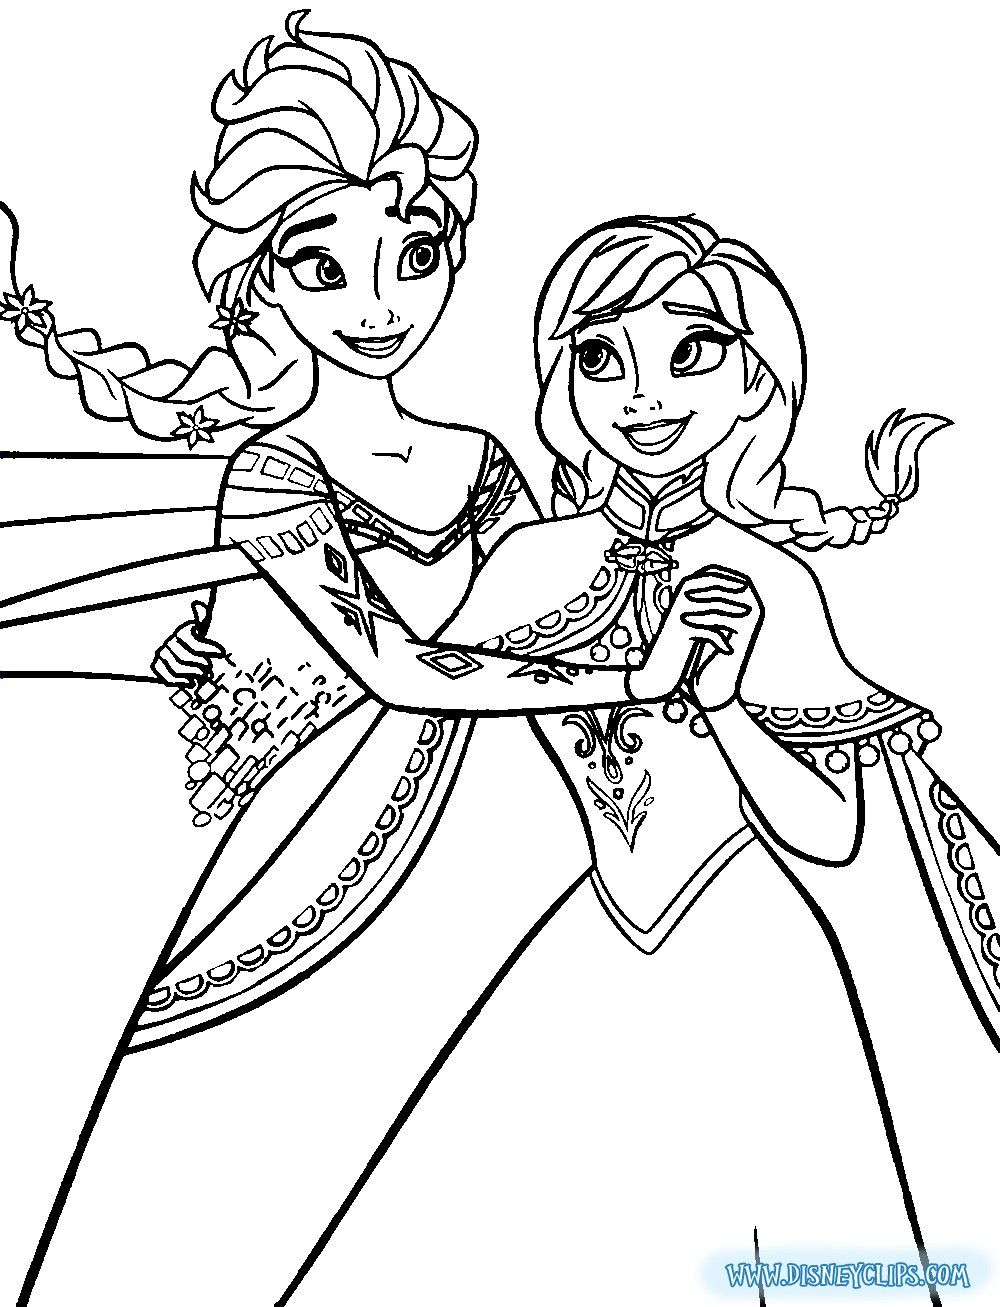 Coloring Pages Of Princess Anna From Frozen Through The Thousand Pictures Online Re Elsa Coloring Pages Disney Princess Coloring Pages Cartoon Coloring Pages